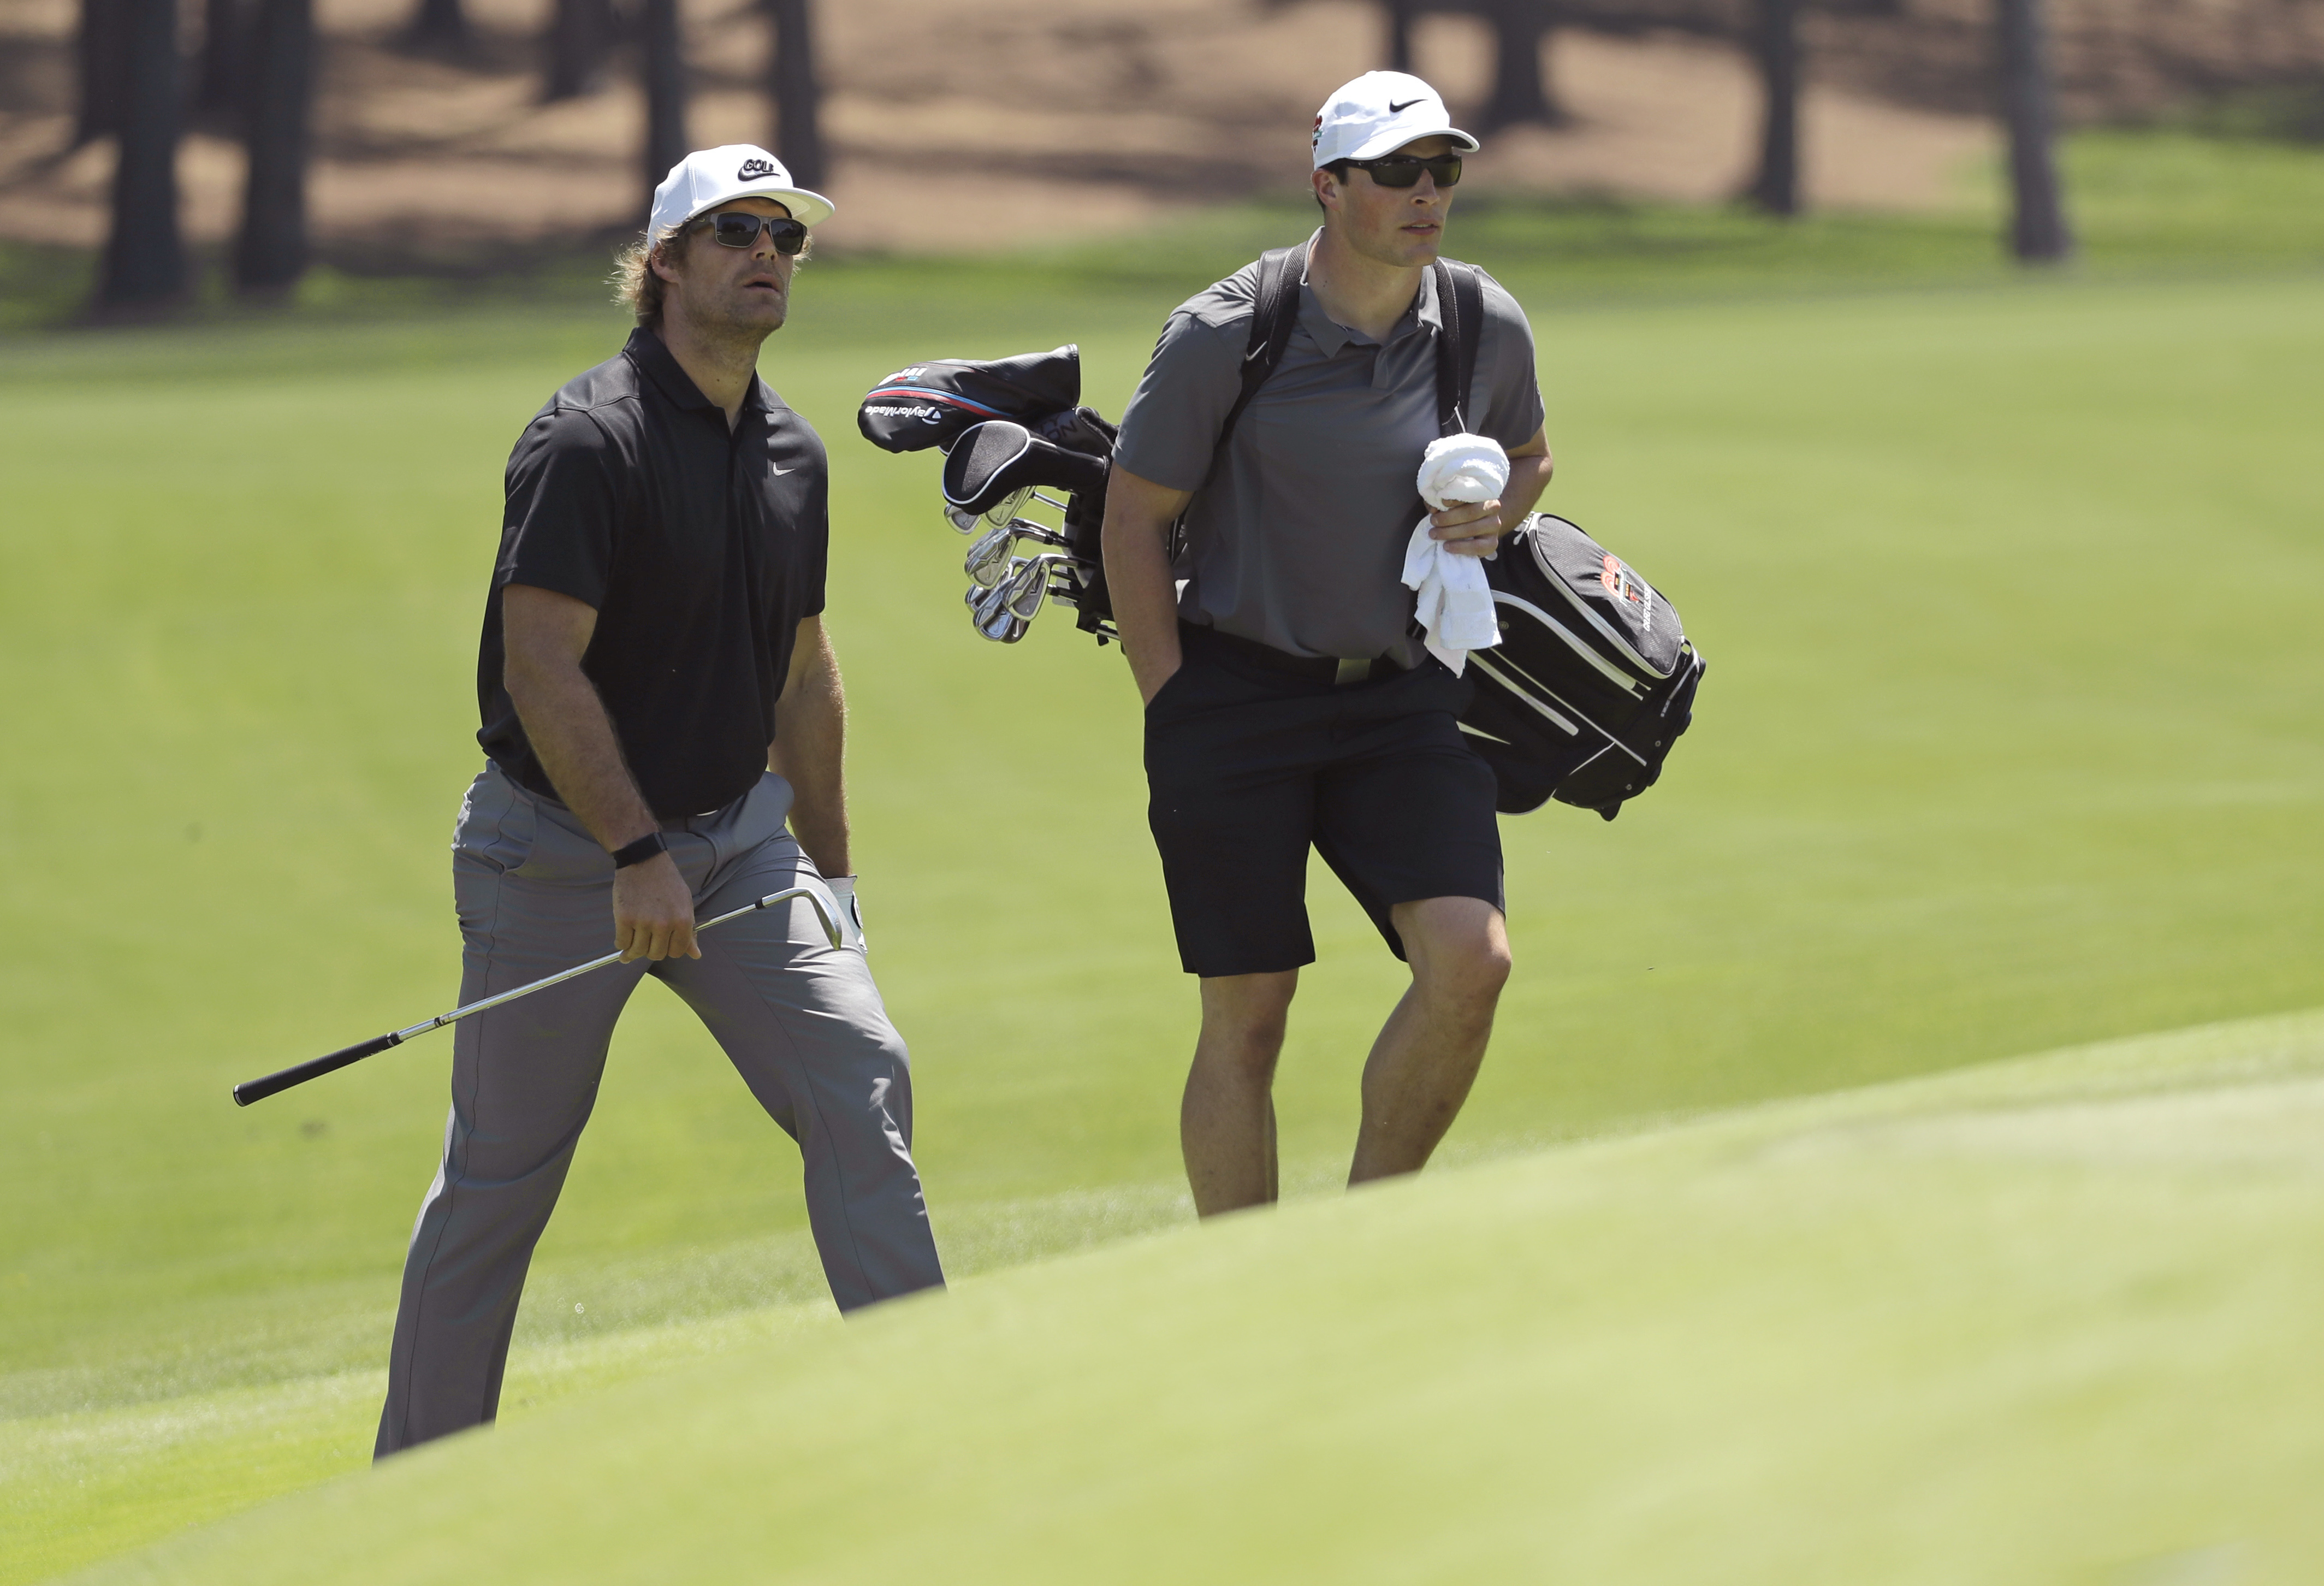 <div class='meta'><div class='origin-logo' data-origin='AP'></div><span class='caption-text' data-credit='Chuck Burton'>Carolina Panthers' Greg Olsen, left, and his caddie, Carolina Panthers' Luke Kuechly, right, walk to the second green during the pro-am.</span></div>